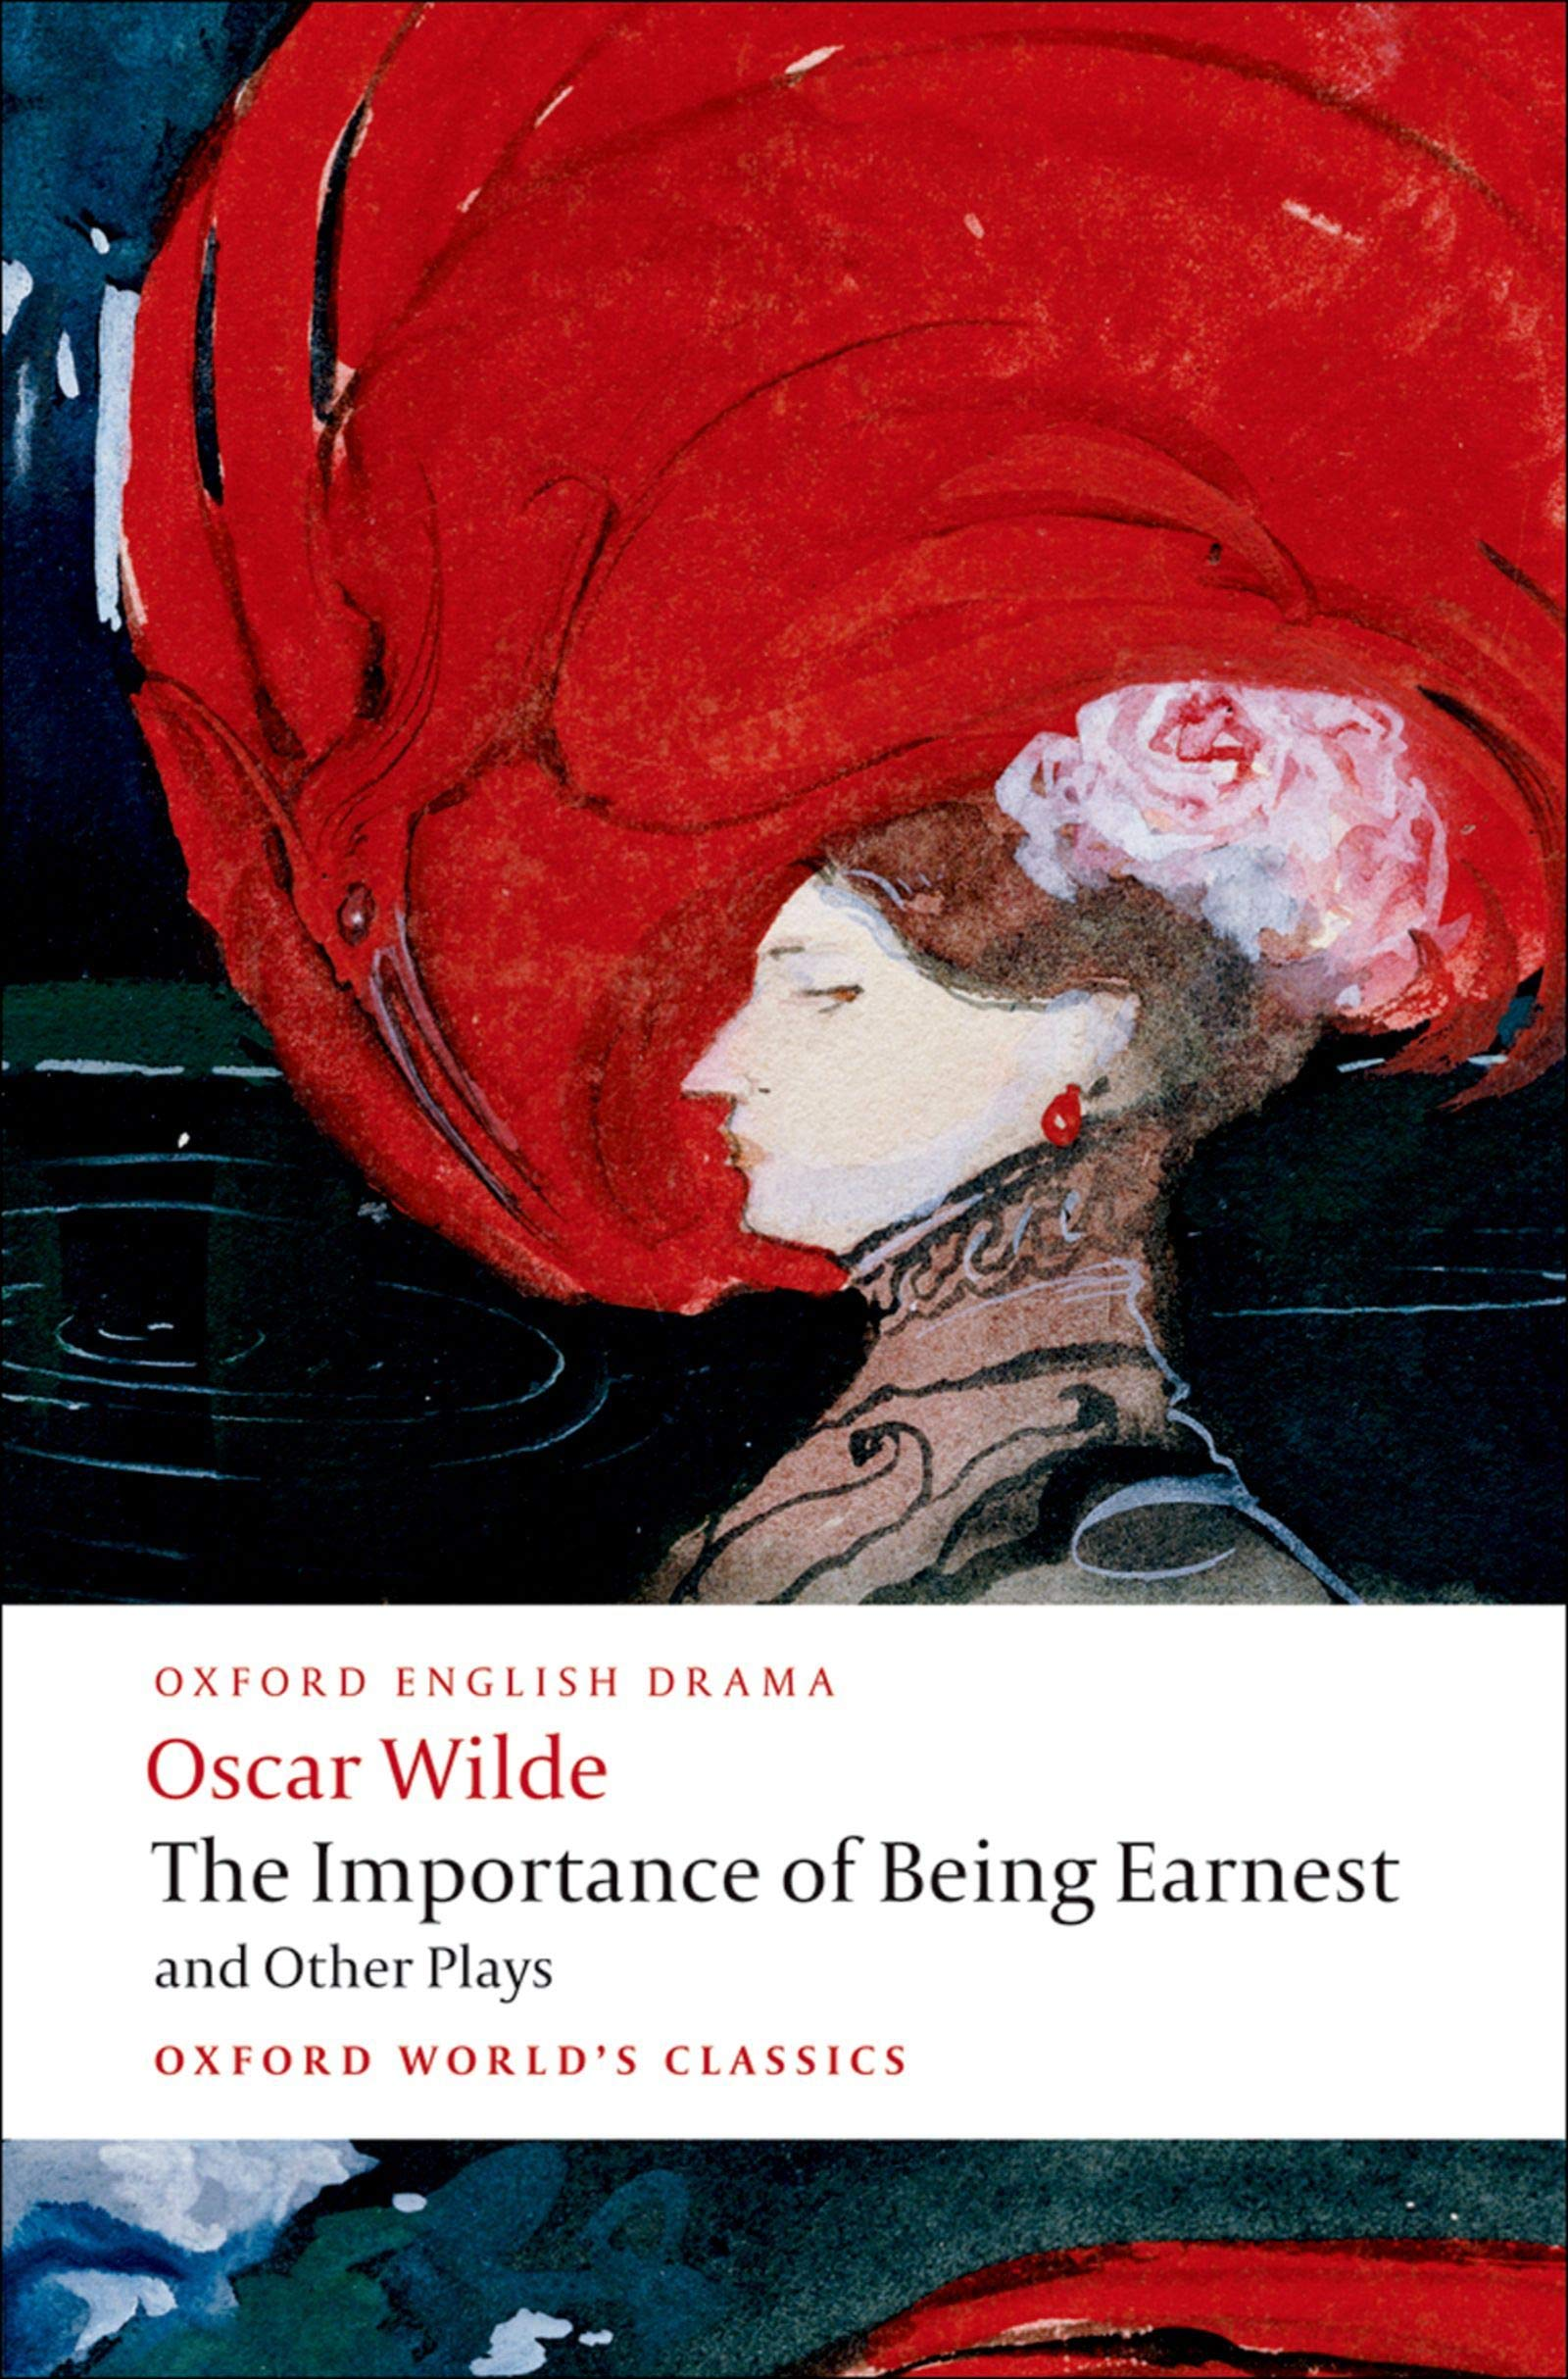 The Importance Of Being Earnest And Other Plays  Lady Windermere's Fan; Salome; A Woman Of No Importance; An Ideal Husband; The Importance Of Being Earnest  Oxford World's Classics   English Edition